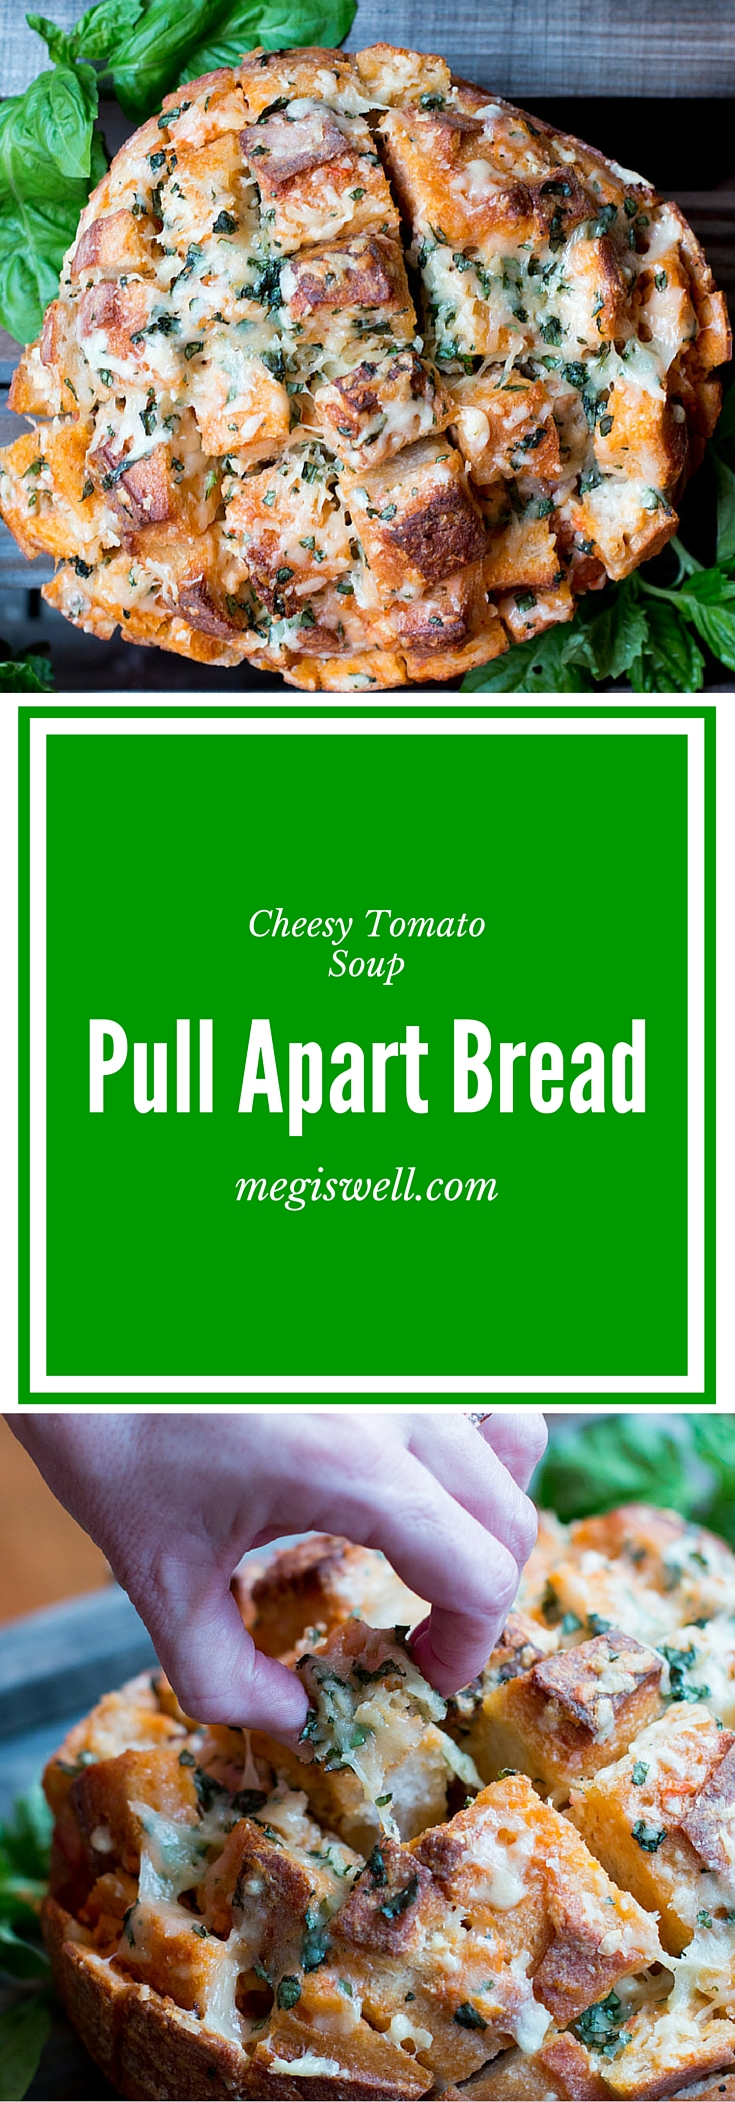 Cheesy Tomato Soup Pull Apart Bread. Tomato soup leftovers, melted butter, crushed garlic, 3 types of cheese, and fresh basil combine in glorious bite sized portions in this easy appetizer.